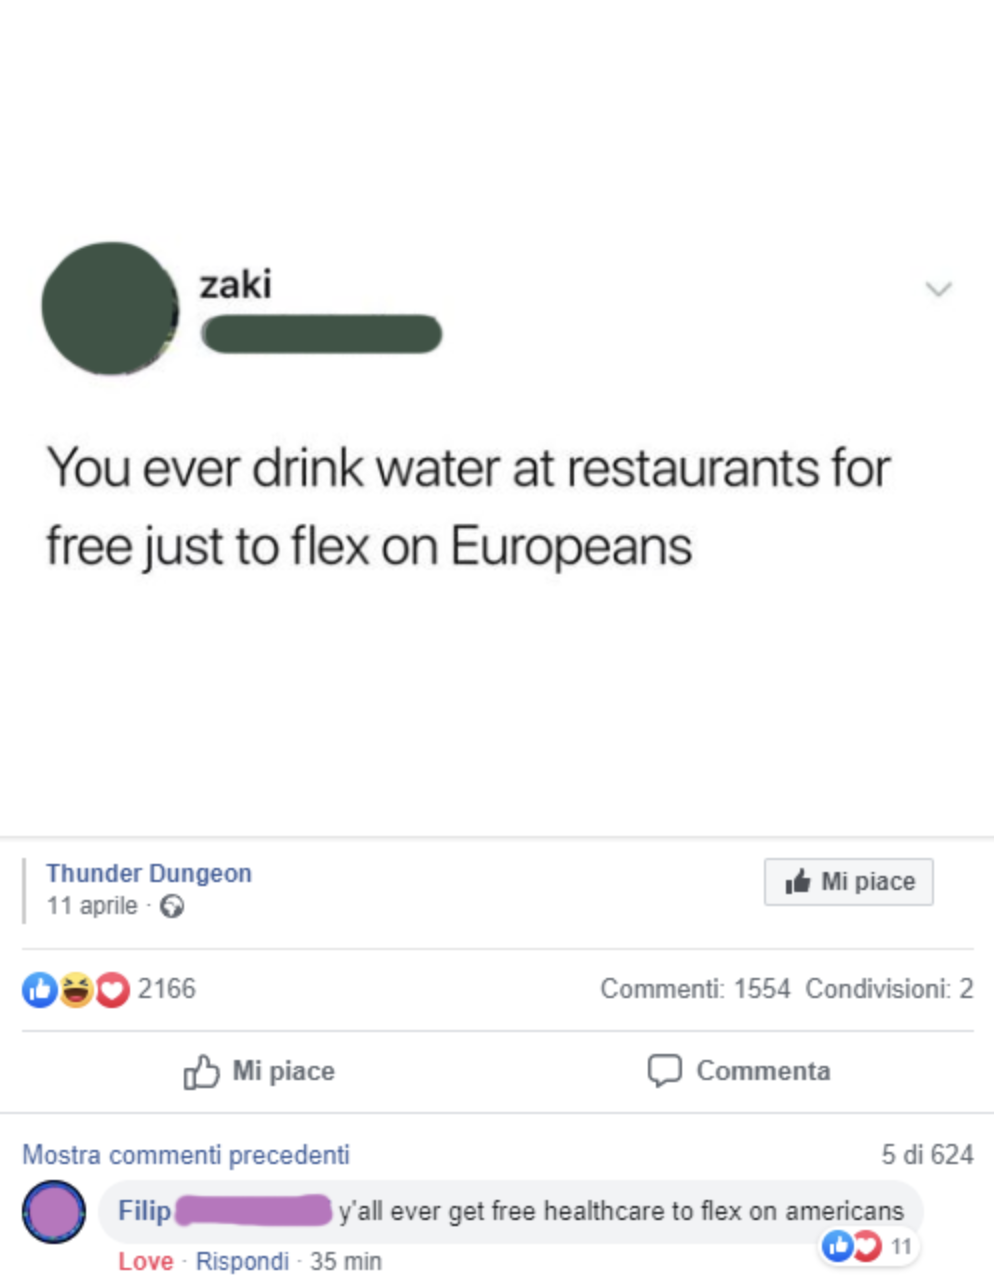 person who wants to stunt on europeans for getting free water: